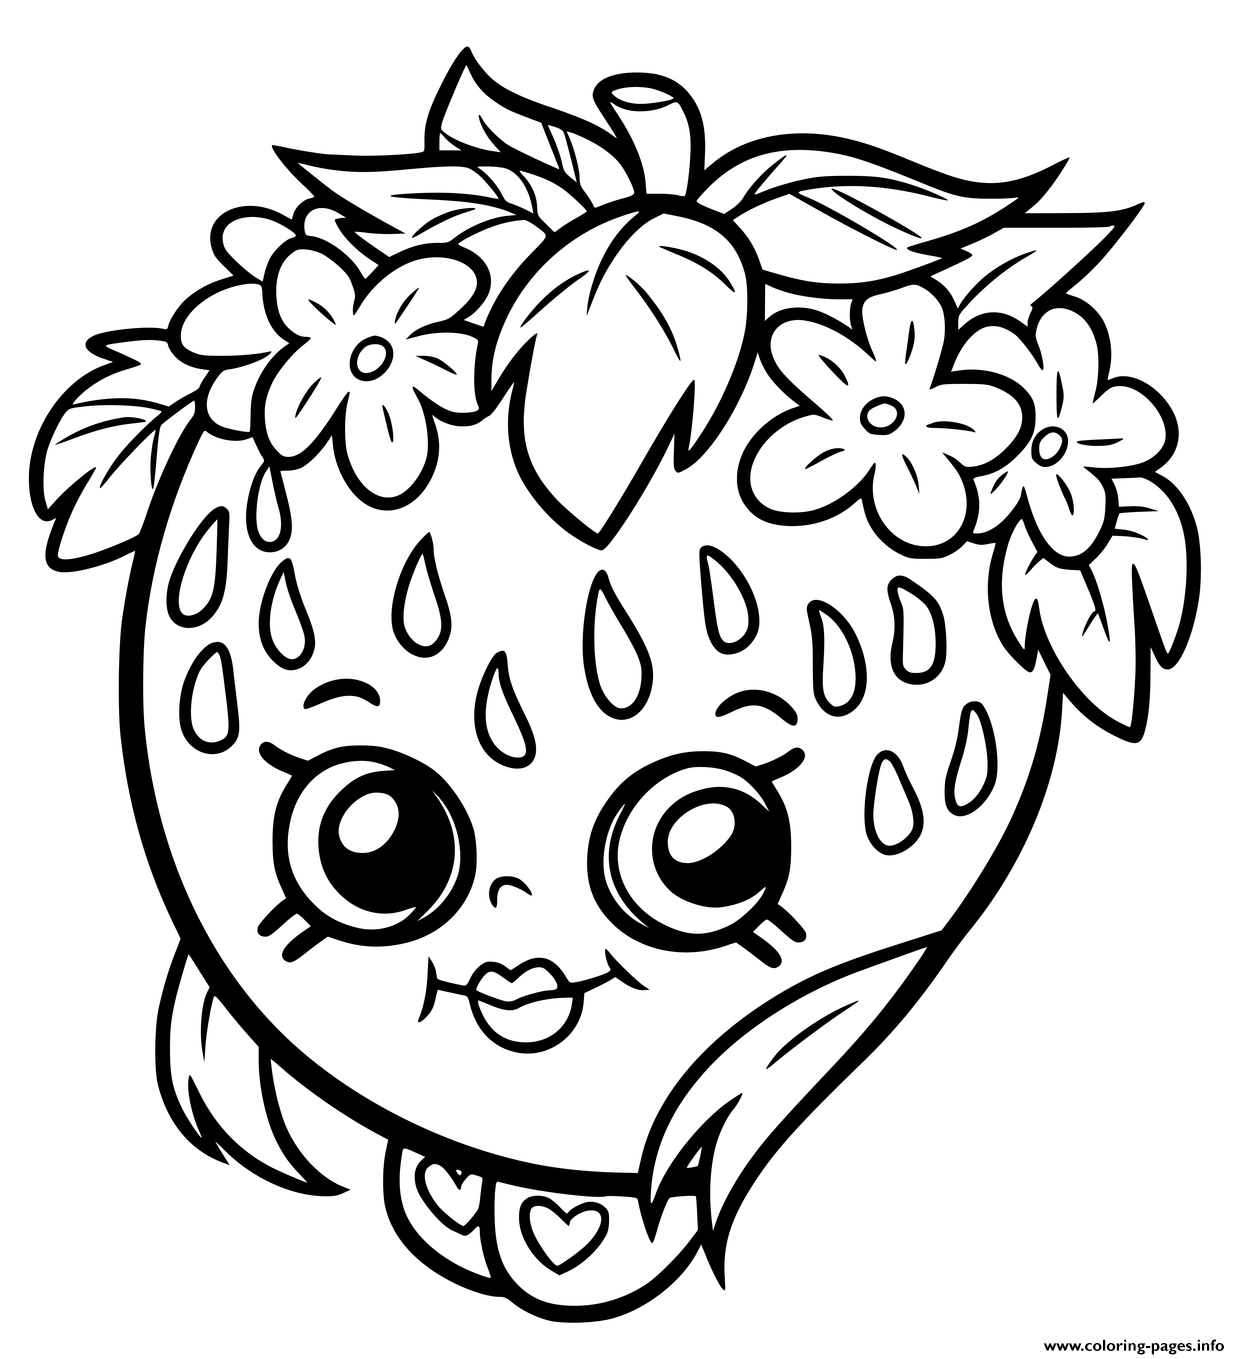 Print Shopkins Strawberry Smile Coloring Pages School Stuff